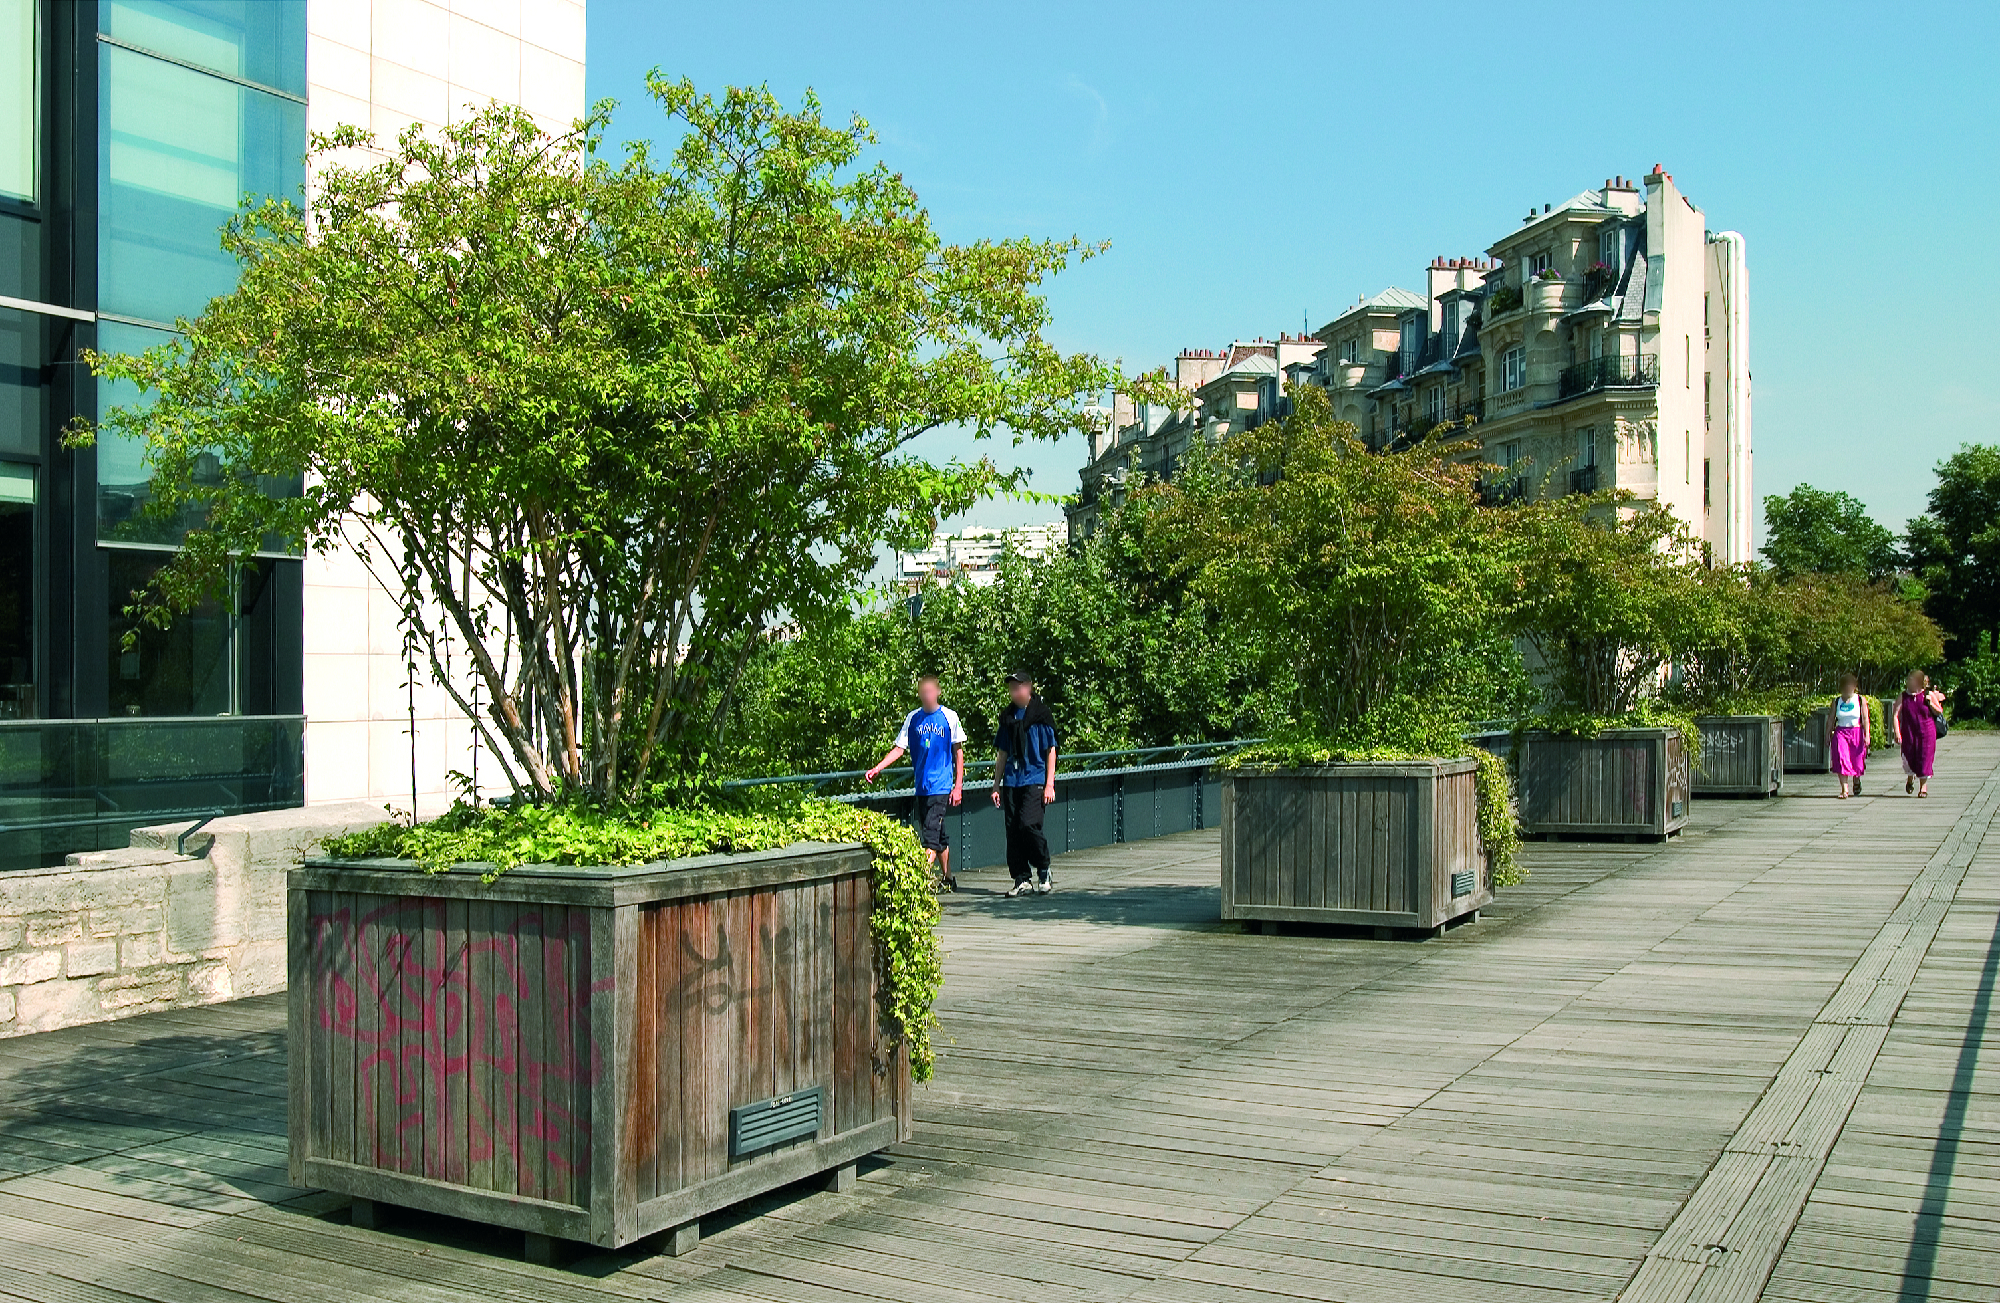 La coul e verte promenade plant e things to do in - Bureau change bastille ...